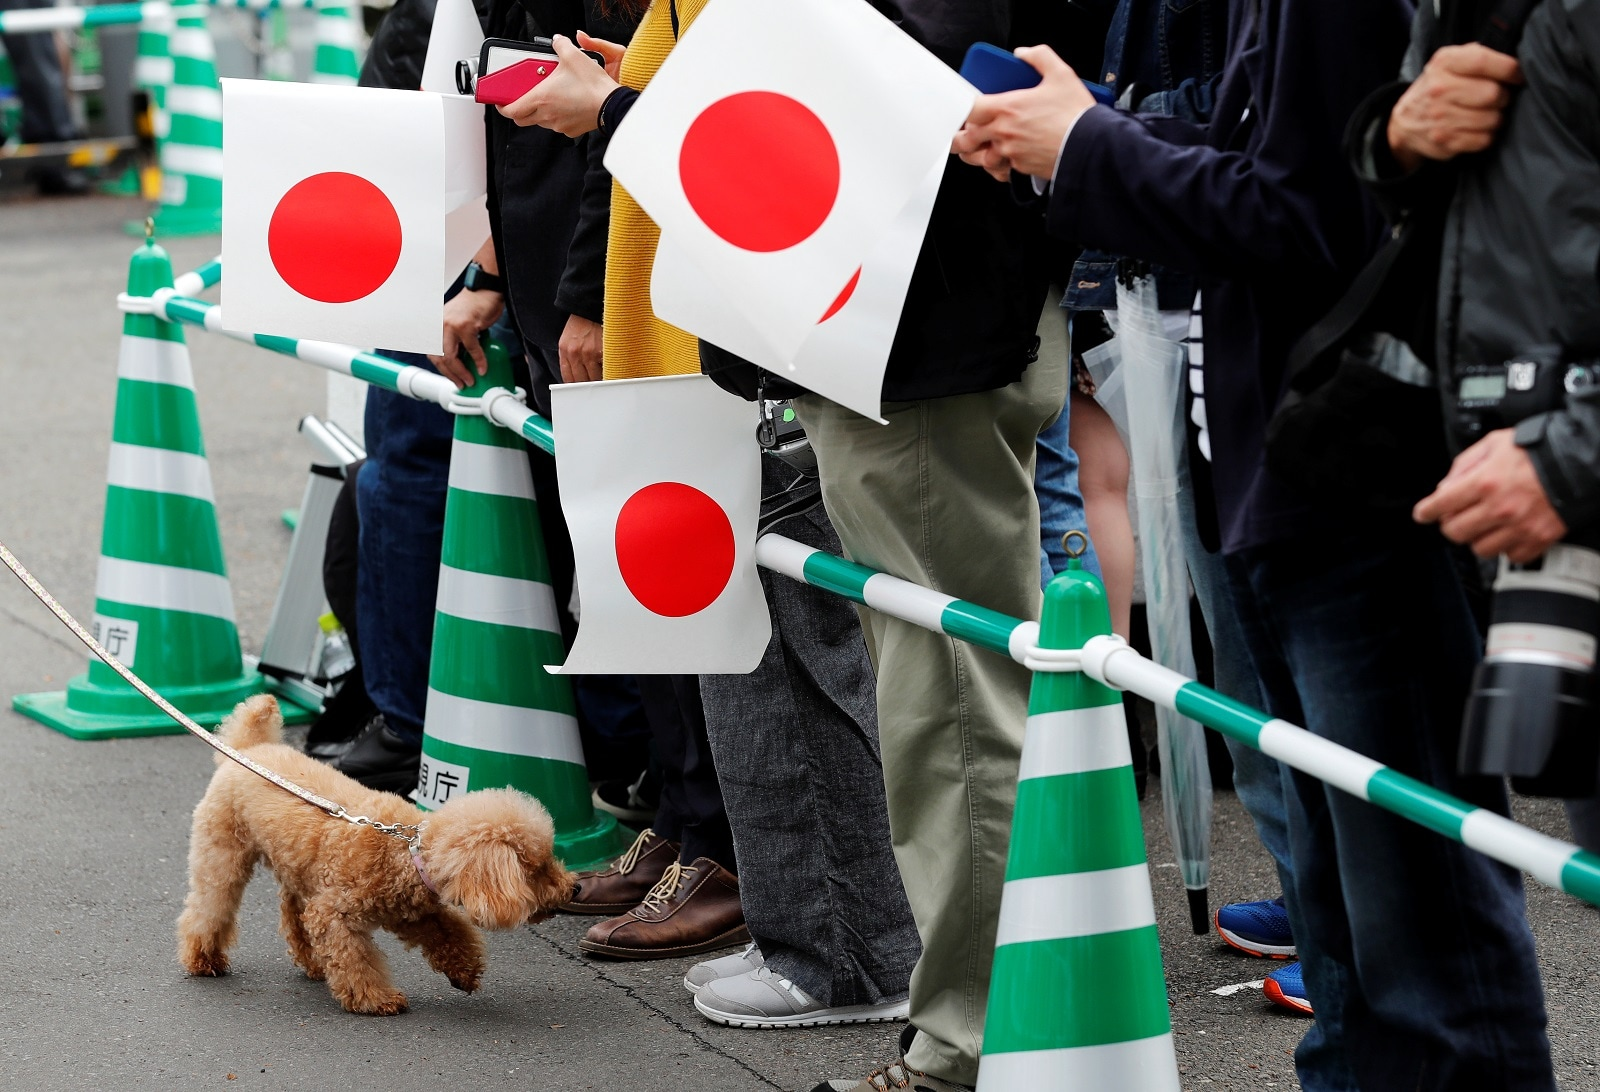 A dog walks past people waiting for the arrival of Japan's new Emperor Naruhito to the Imperial Palace in Tokyo, Japan May 1, 2019. REUTERS/Kim Kyung-Hoon